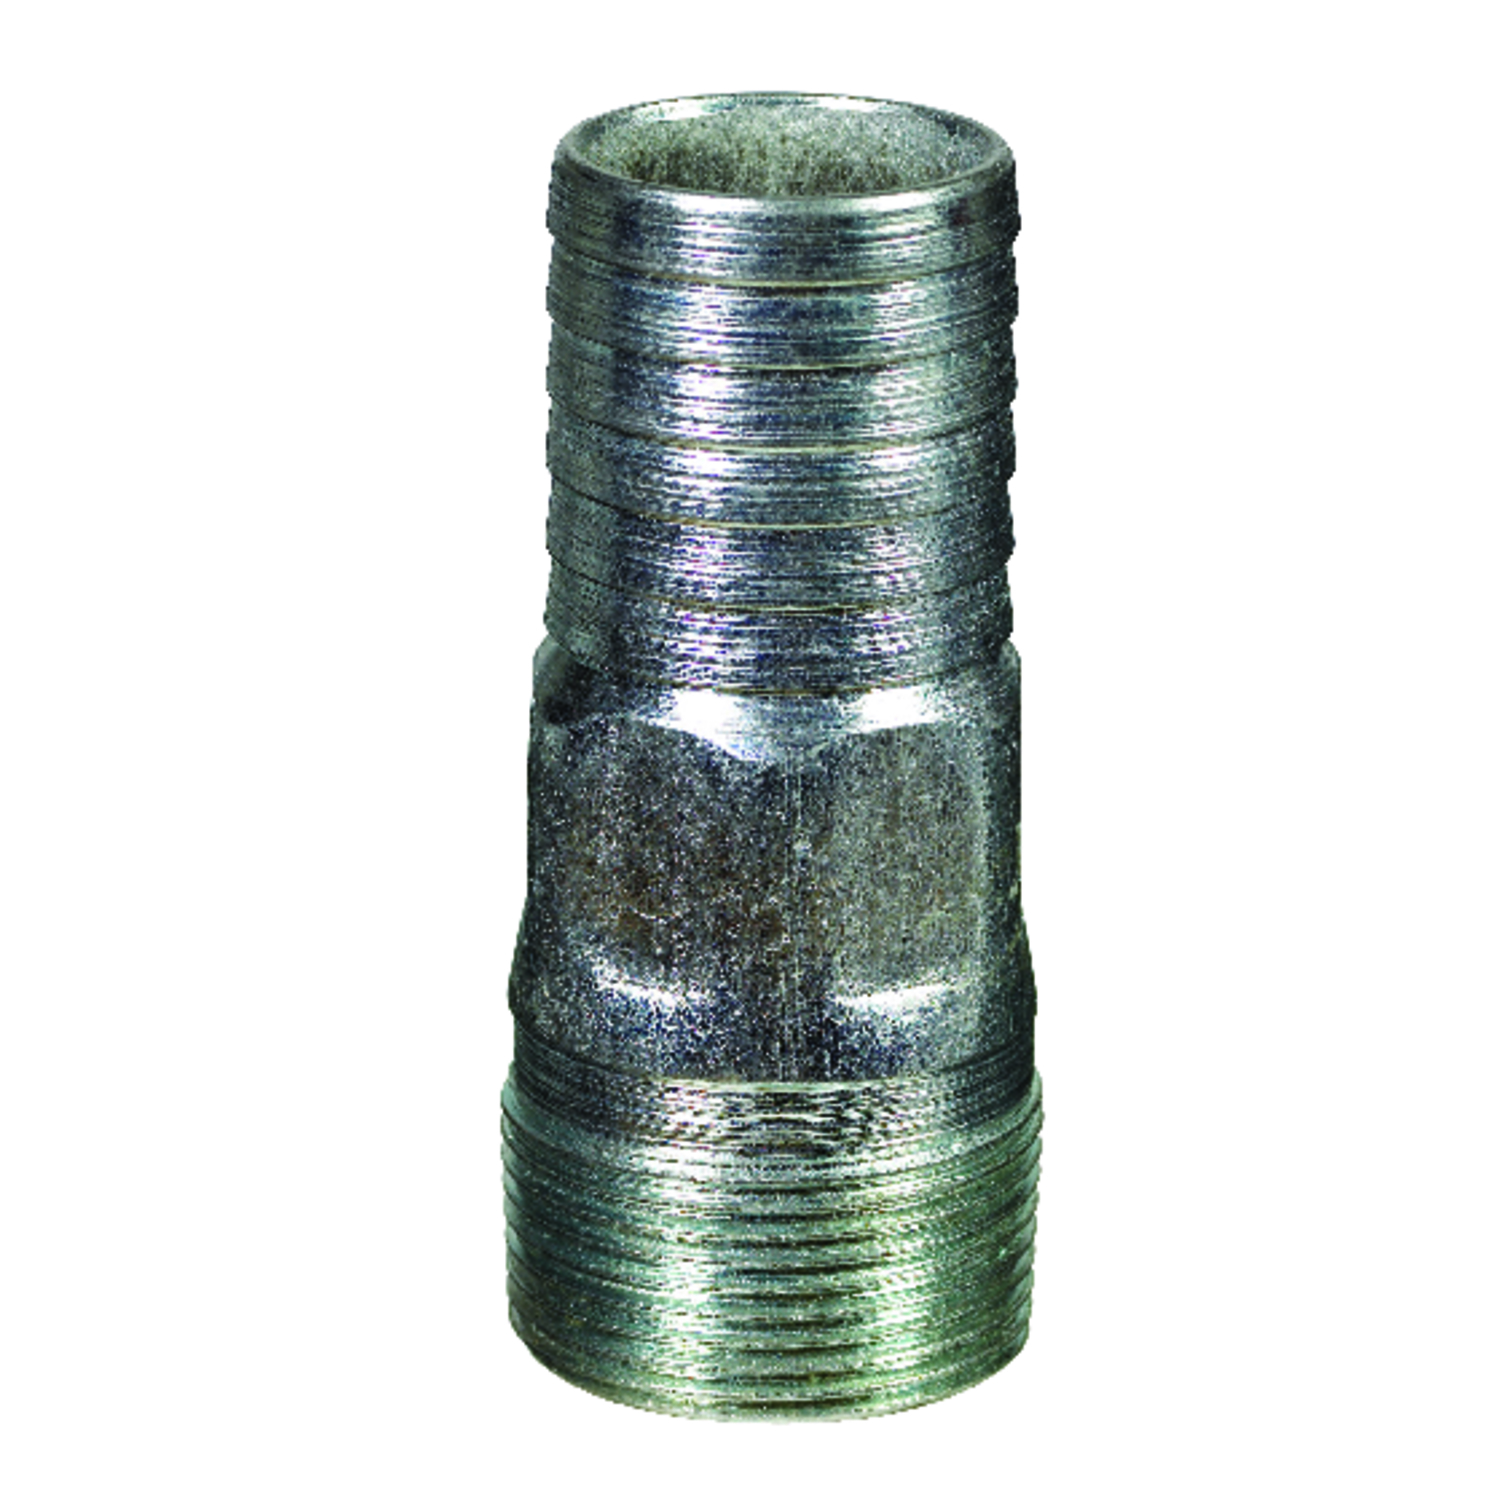 B & K  1-1/4 in. Barb   x 1-1/4 in. Dia. MPT  Galvanized  Galvanized Steel  Adapter